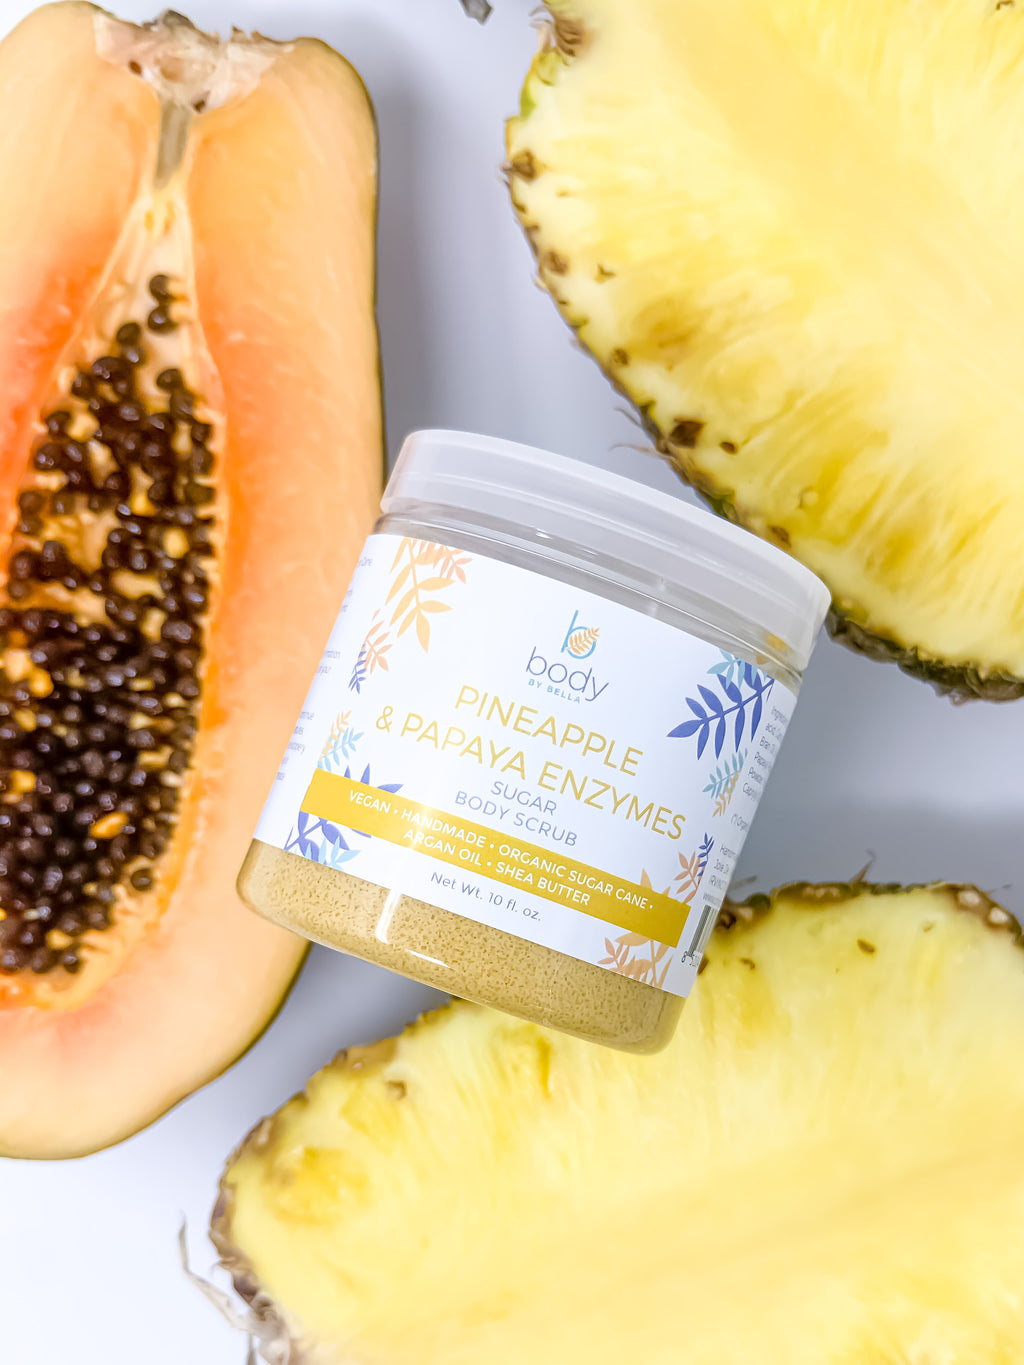 Pineapple and Papaya Enzymes Sugar Body Scrub